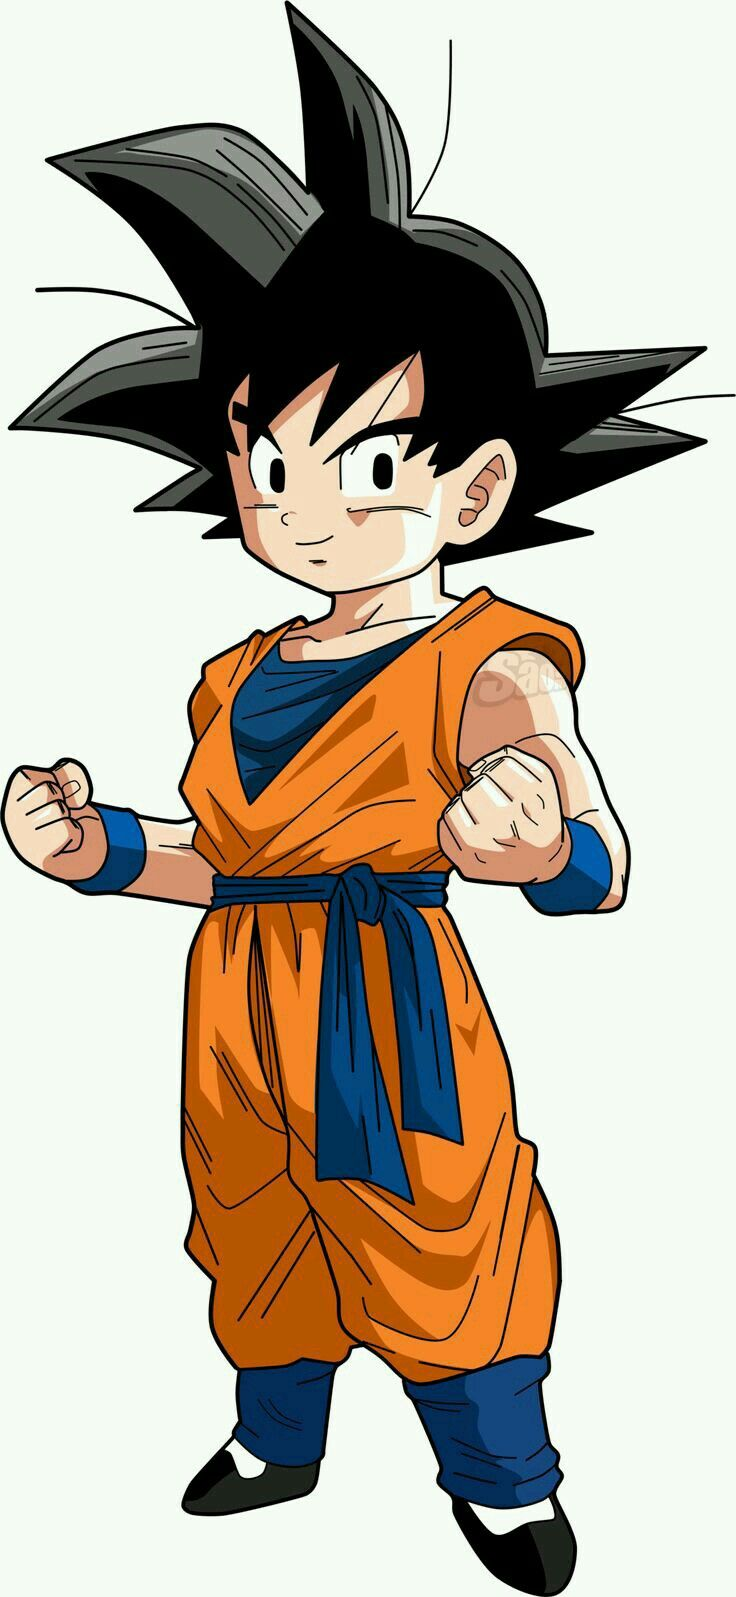 goten dragon ball z pinterest dragon ball dragon ball z and